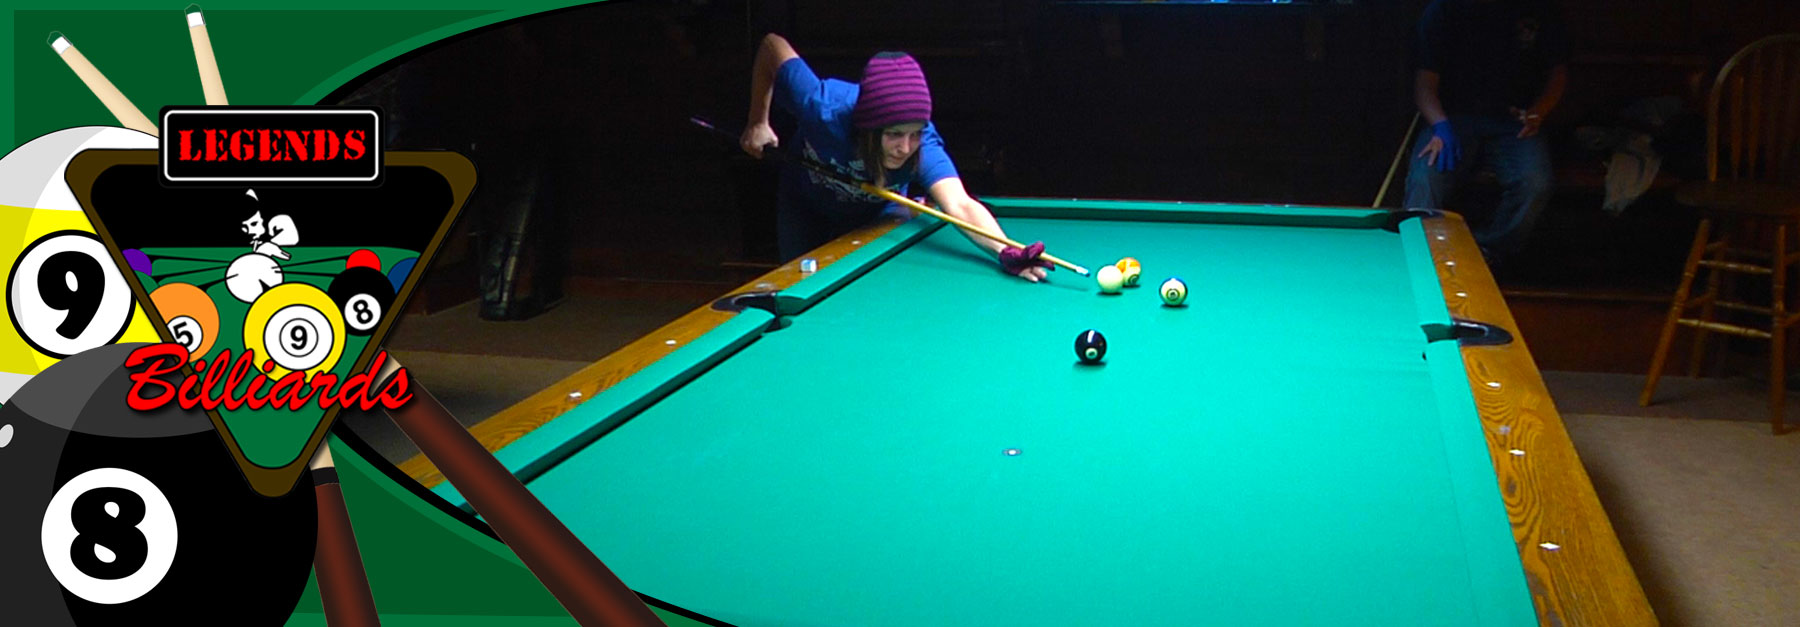 Are You Looking For The Ultimate Pool Hall In The Houston Galveston